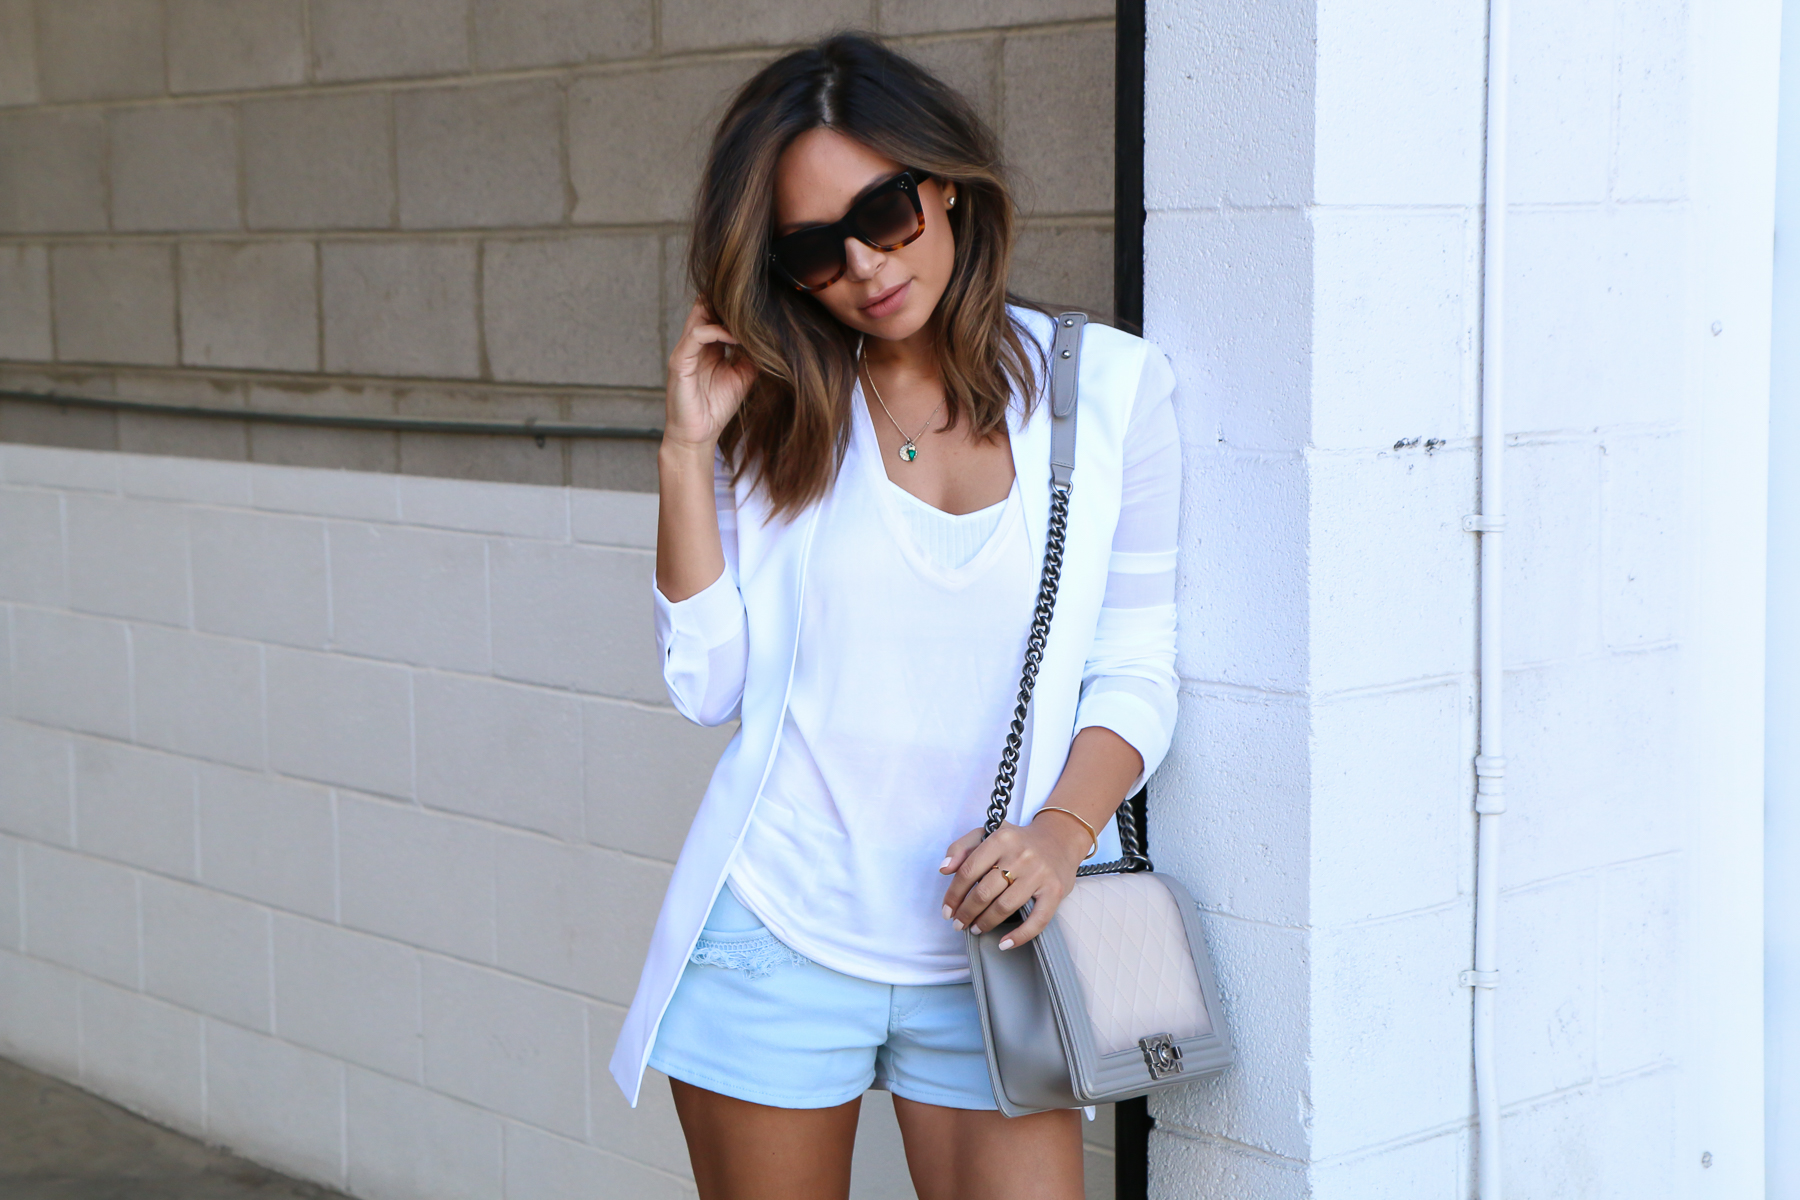 Keep it Short - Life With Me by Marianna Hewitt